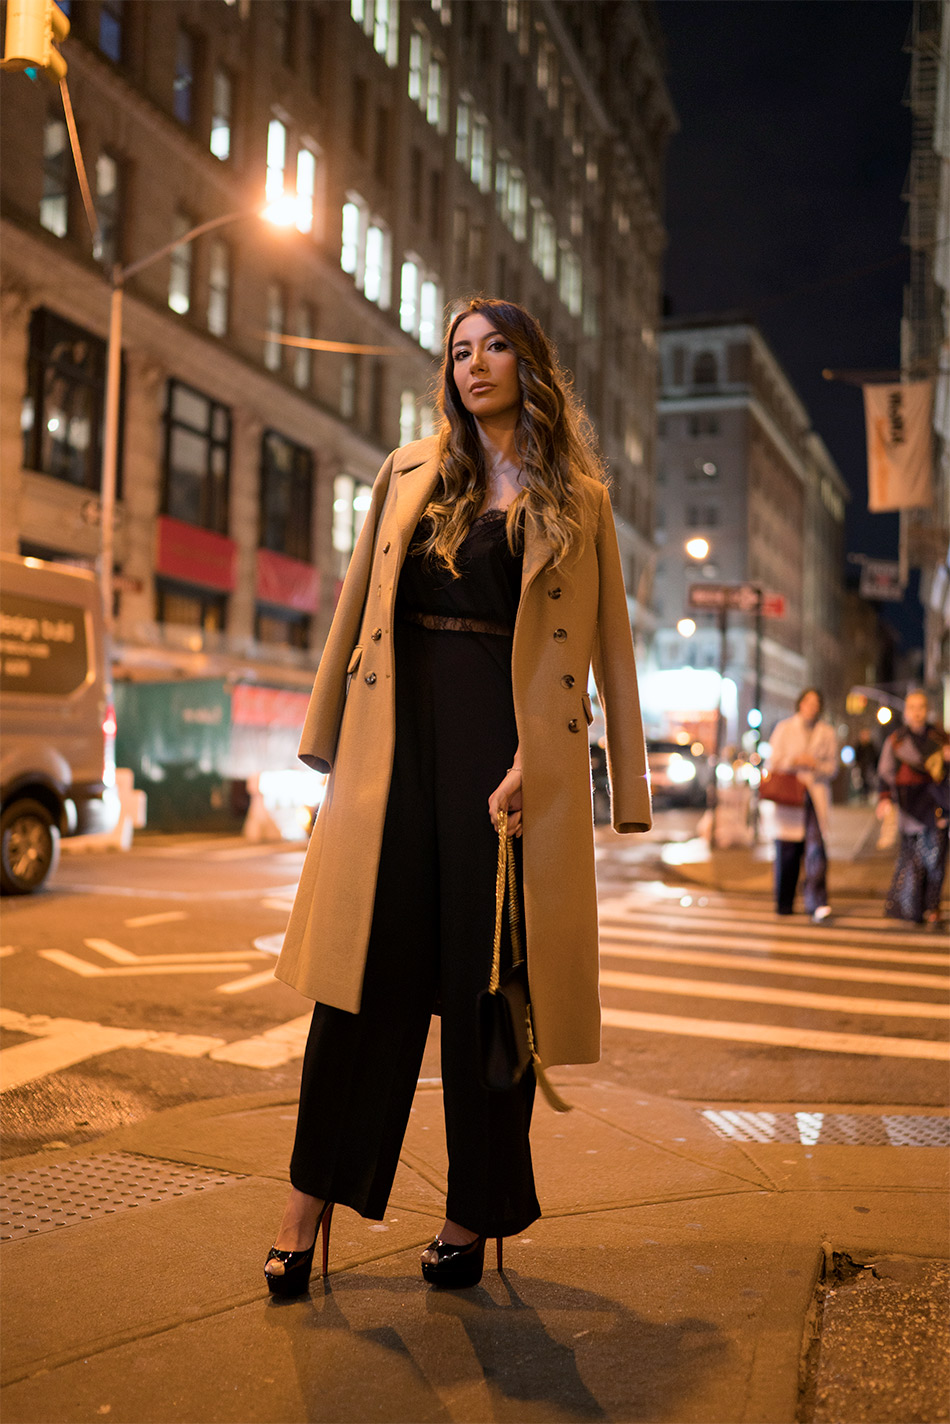 Soho at night. NYFW look by Ulia Ali.